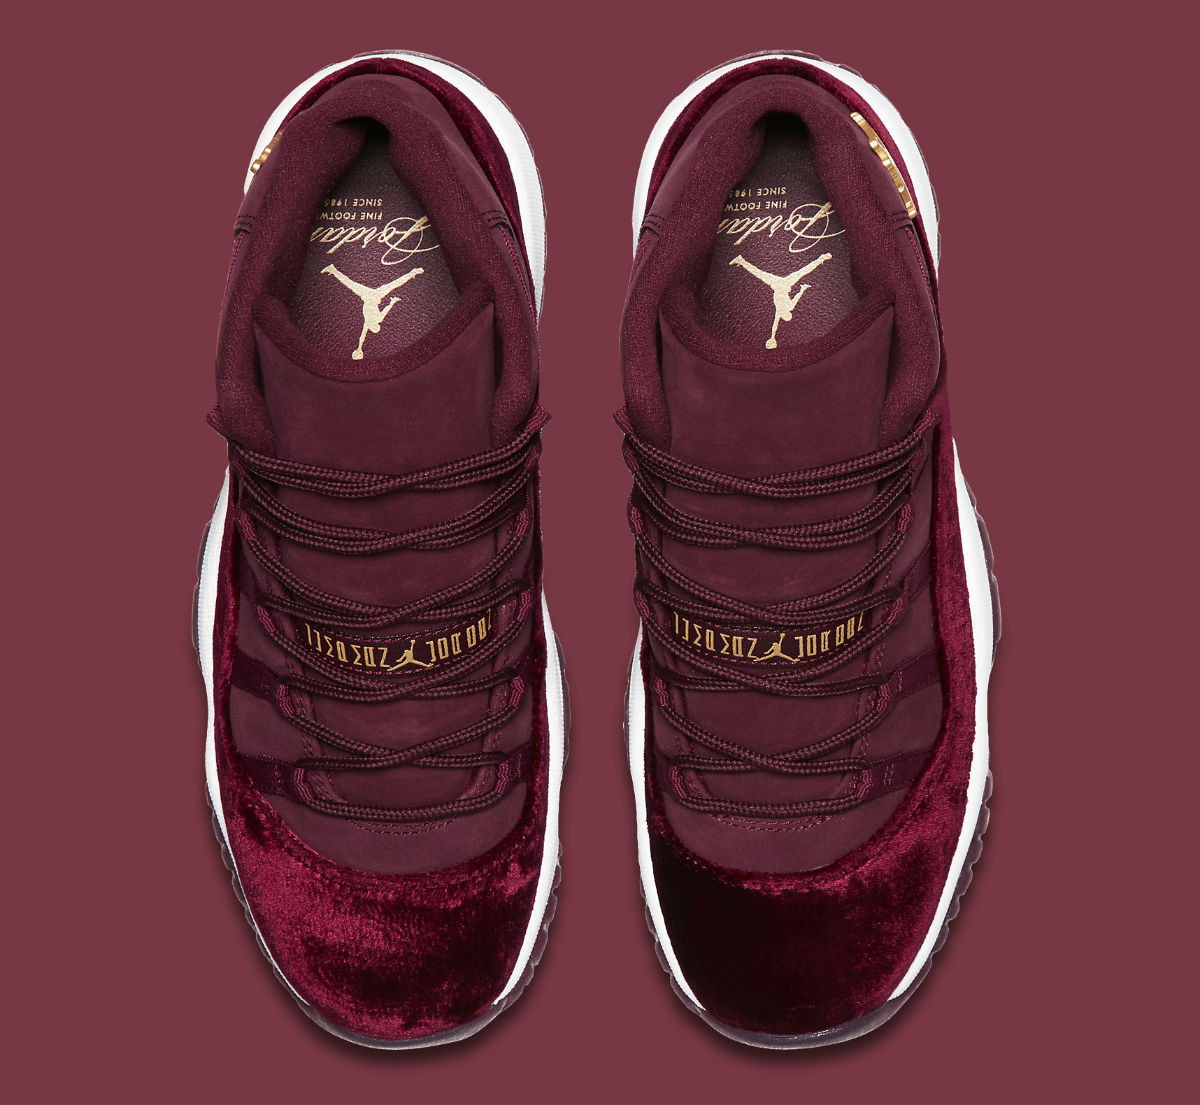 Air Jordan 11 GG Red Velvet Heiress Release Date Top 852625-650